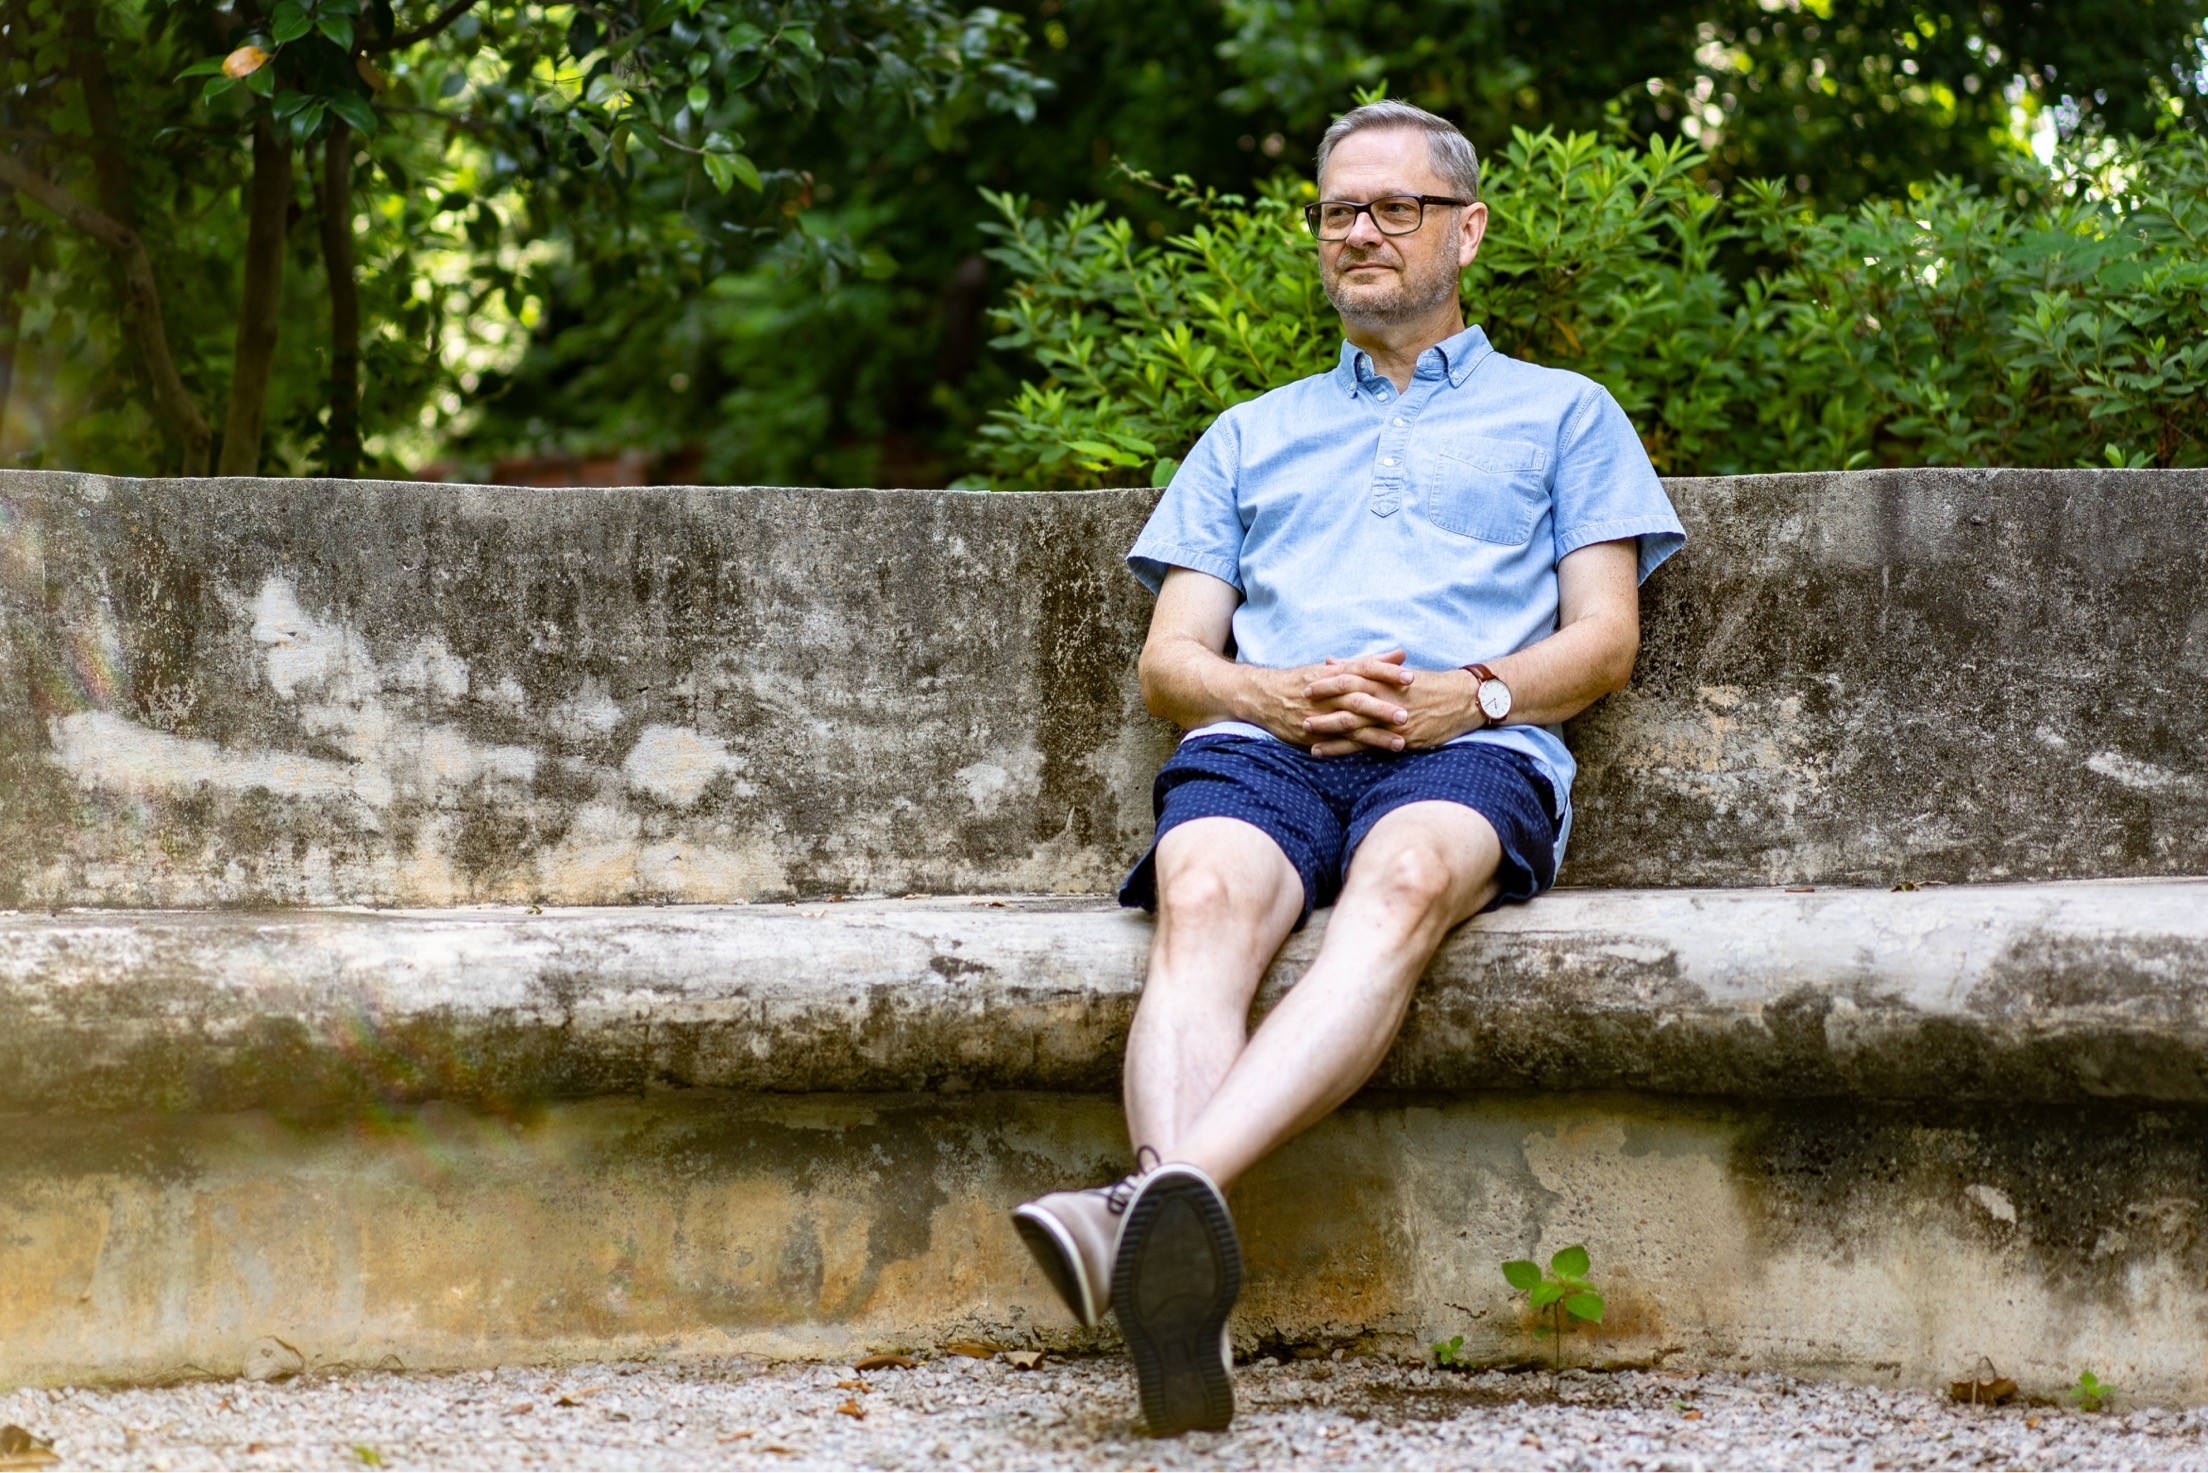 Lee often recharges in three historic gardens within walking distance of his studio. This photo by J. Edward Photography was taken at the Seibels House Garden. The Seibels house is the oldest known building in Columbia, SC.